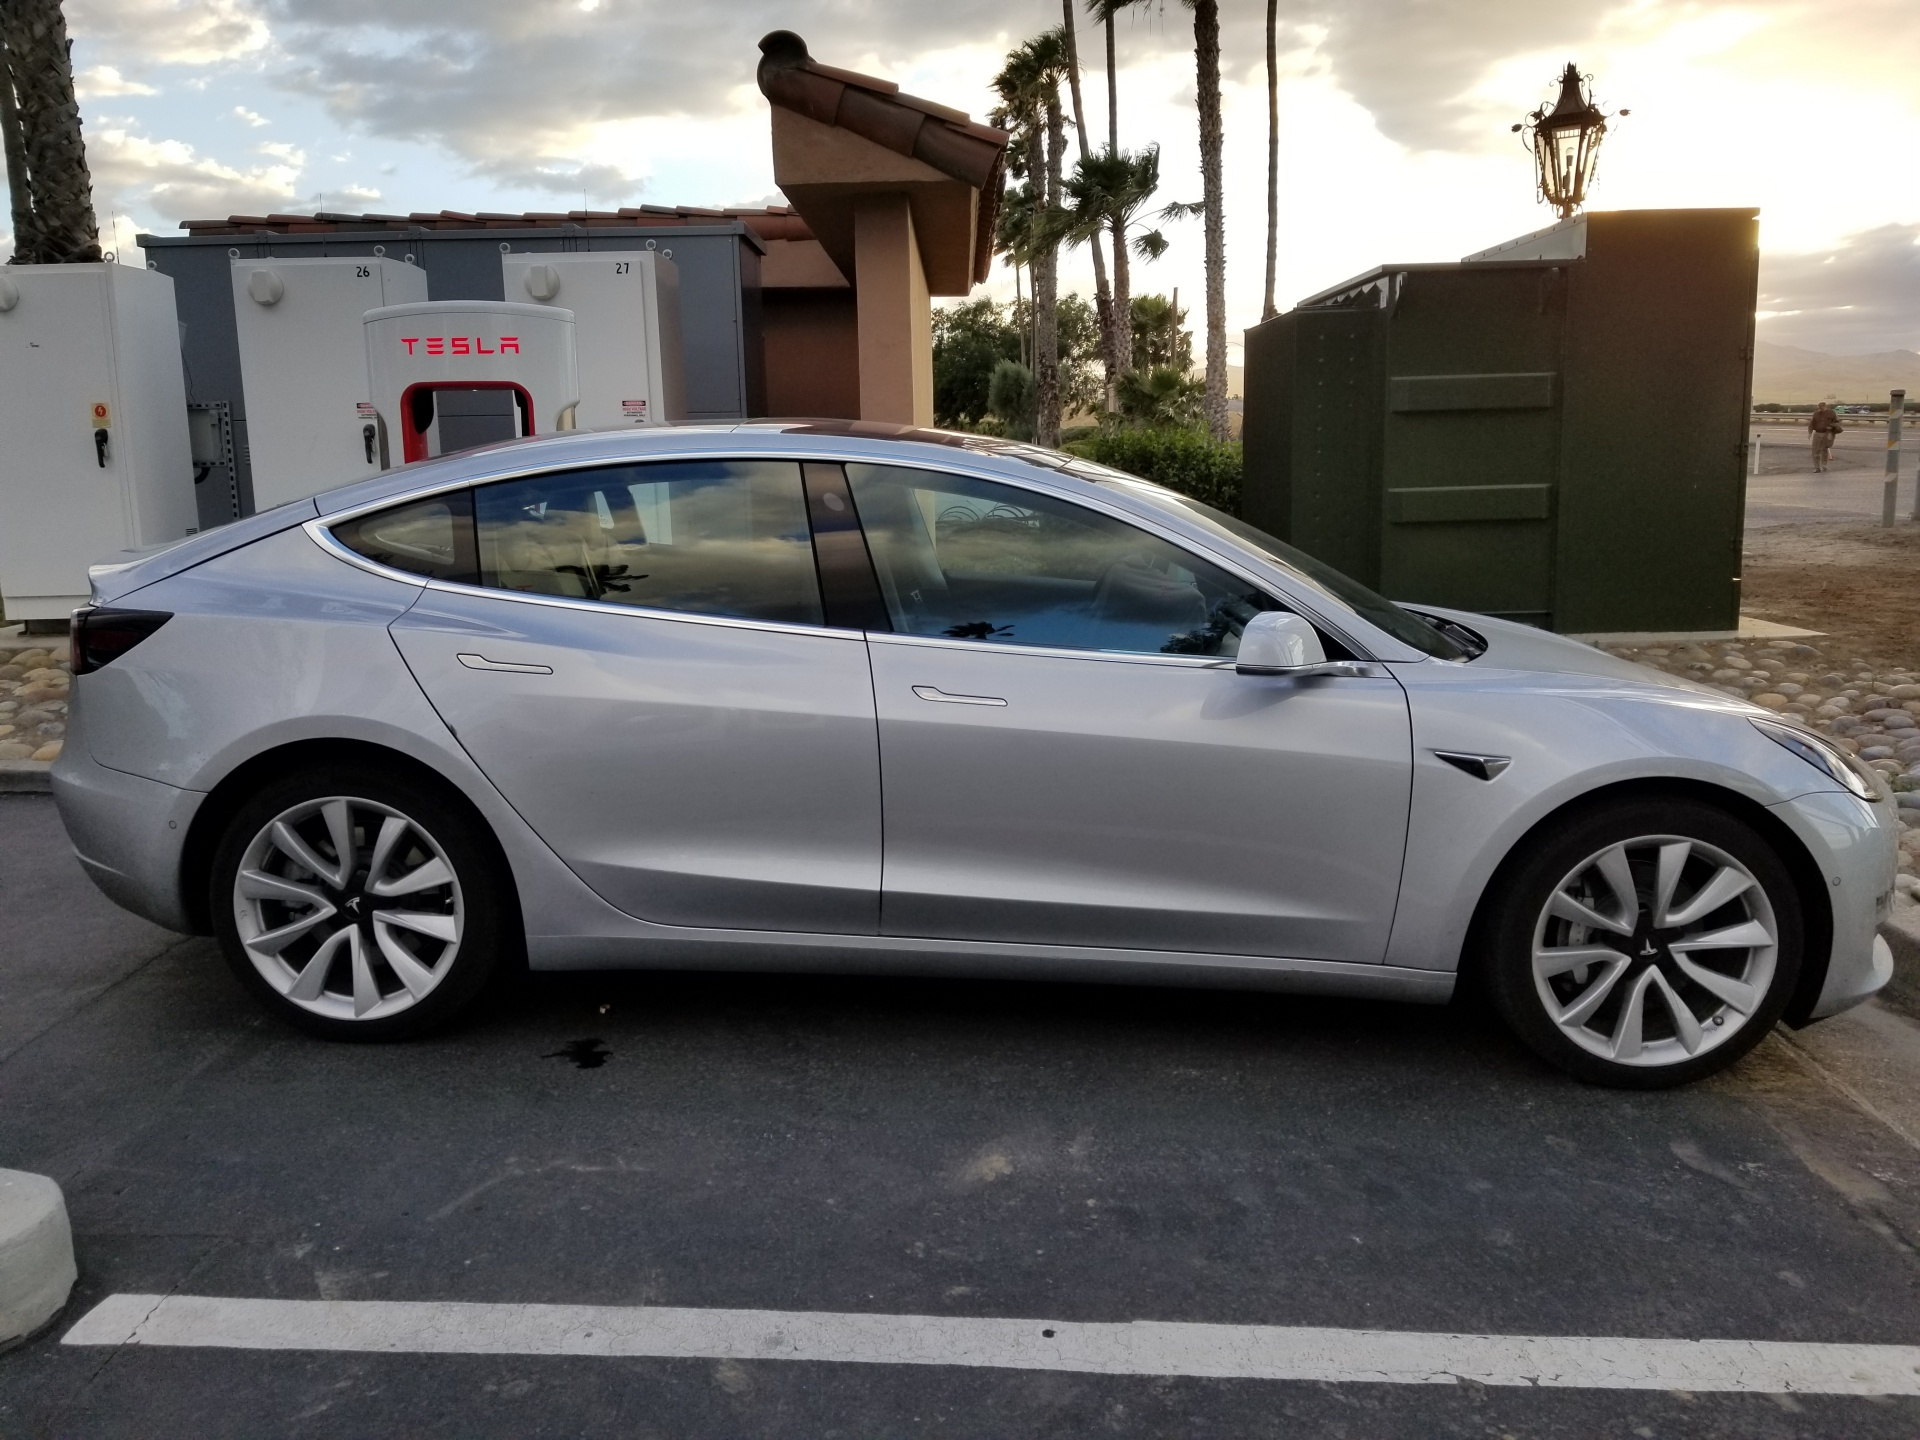 Here's how you decode the Tesla Model 3 VIN